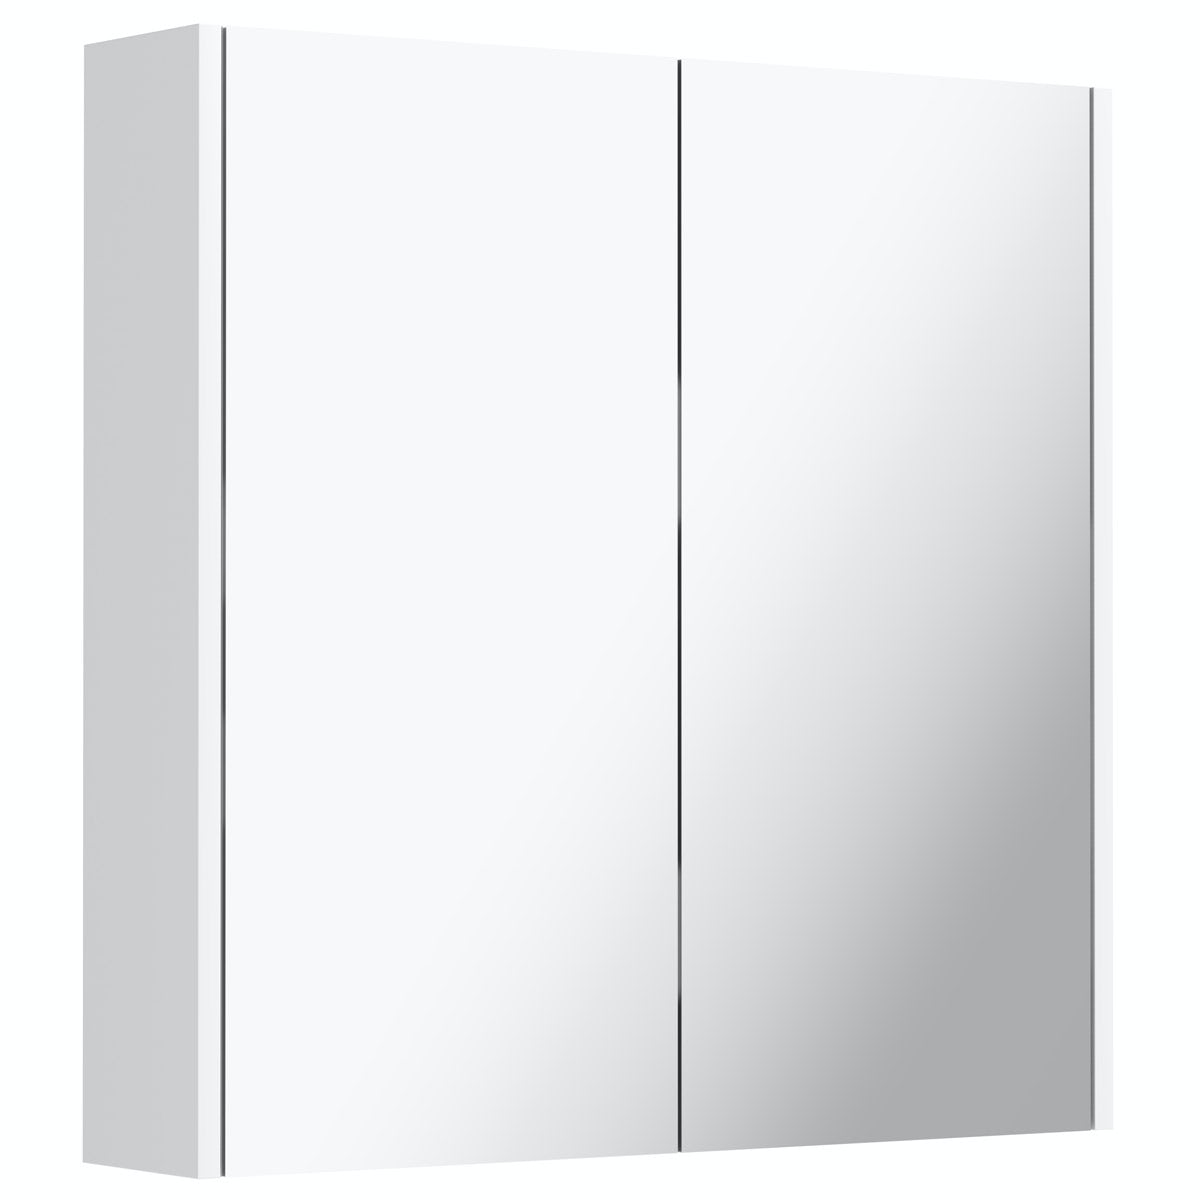 Mode Tate white mirror cabinet 650mm